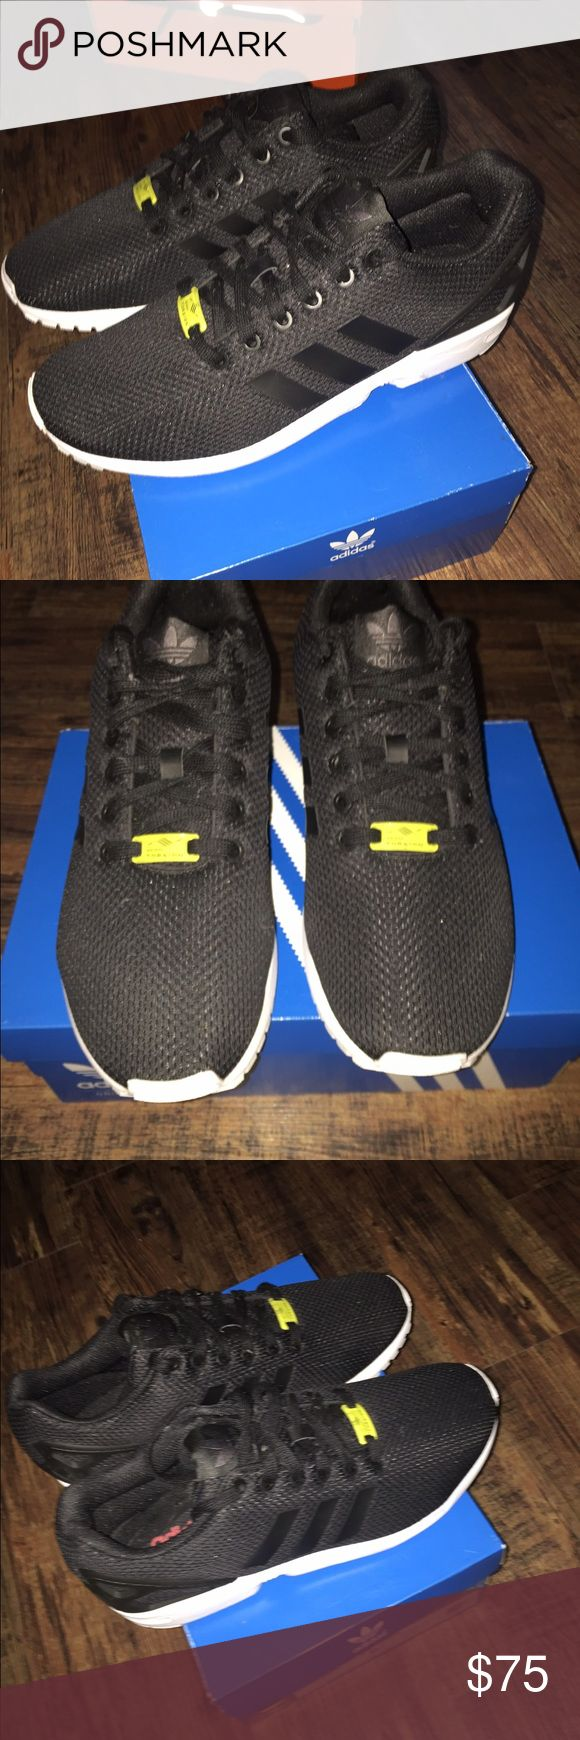 Adidas zx flux shoes Here I have are a pair of Adidas zx flux they are  brand New and not worn at all , They are super clean even the bottoms and inside .  and size 9.5 Adidas Shoes Athletic Shoes